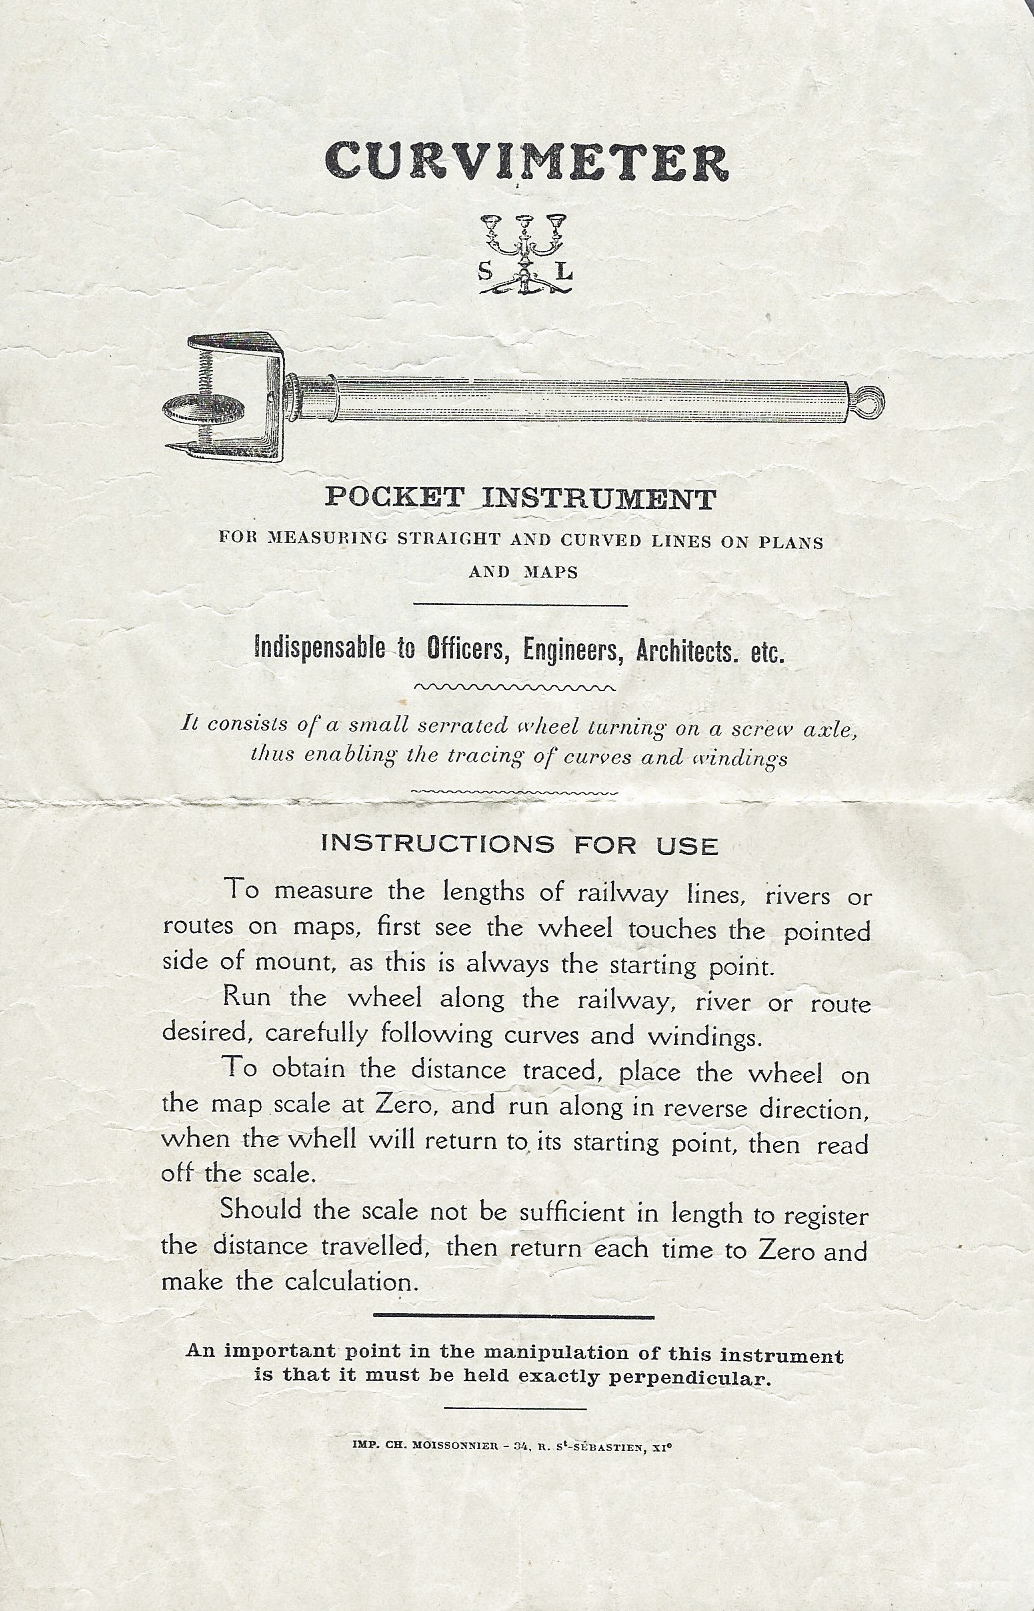 Instructional leaflet supplied with SL Curvimeter